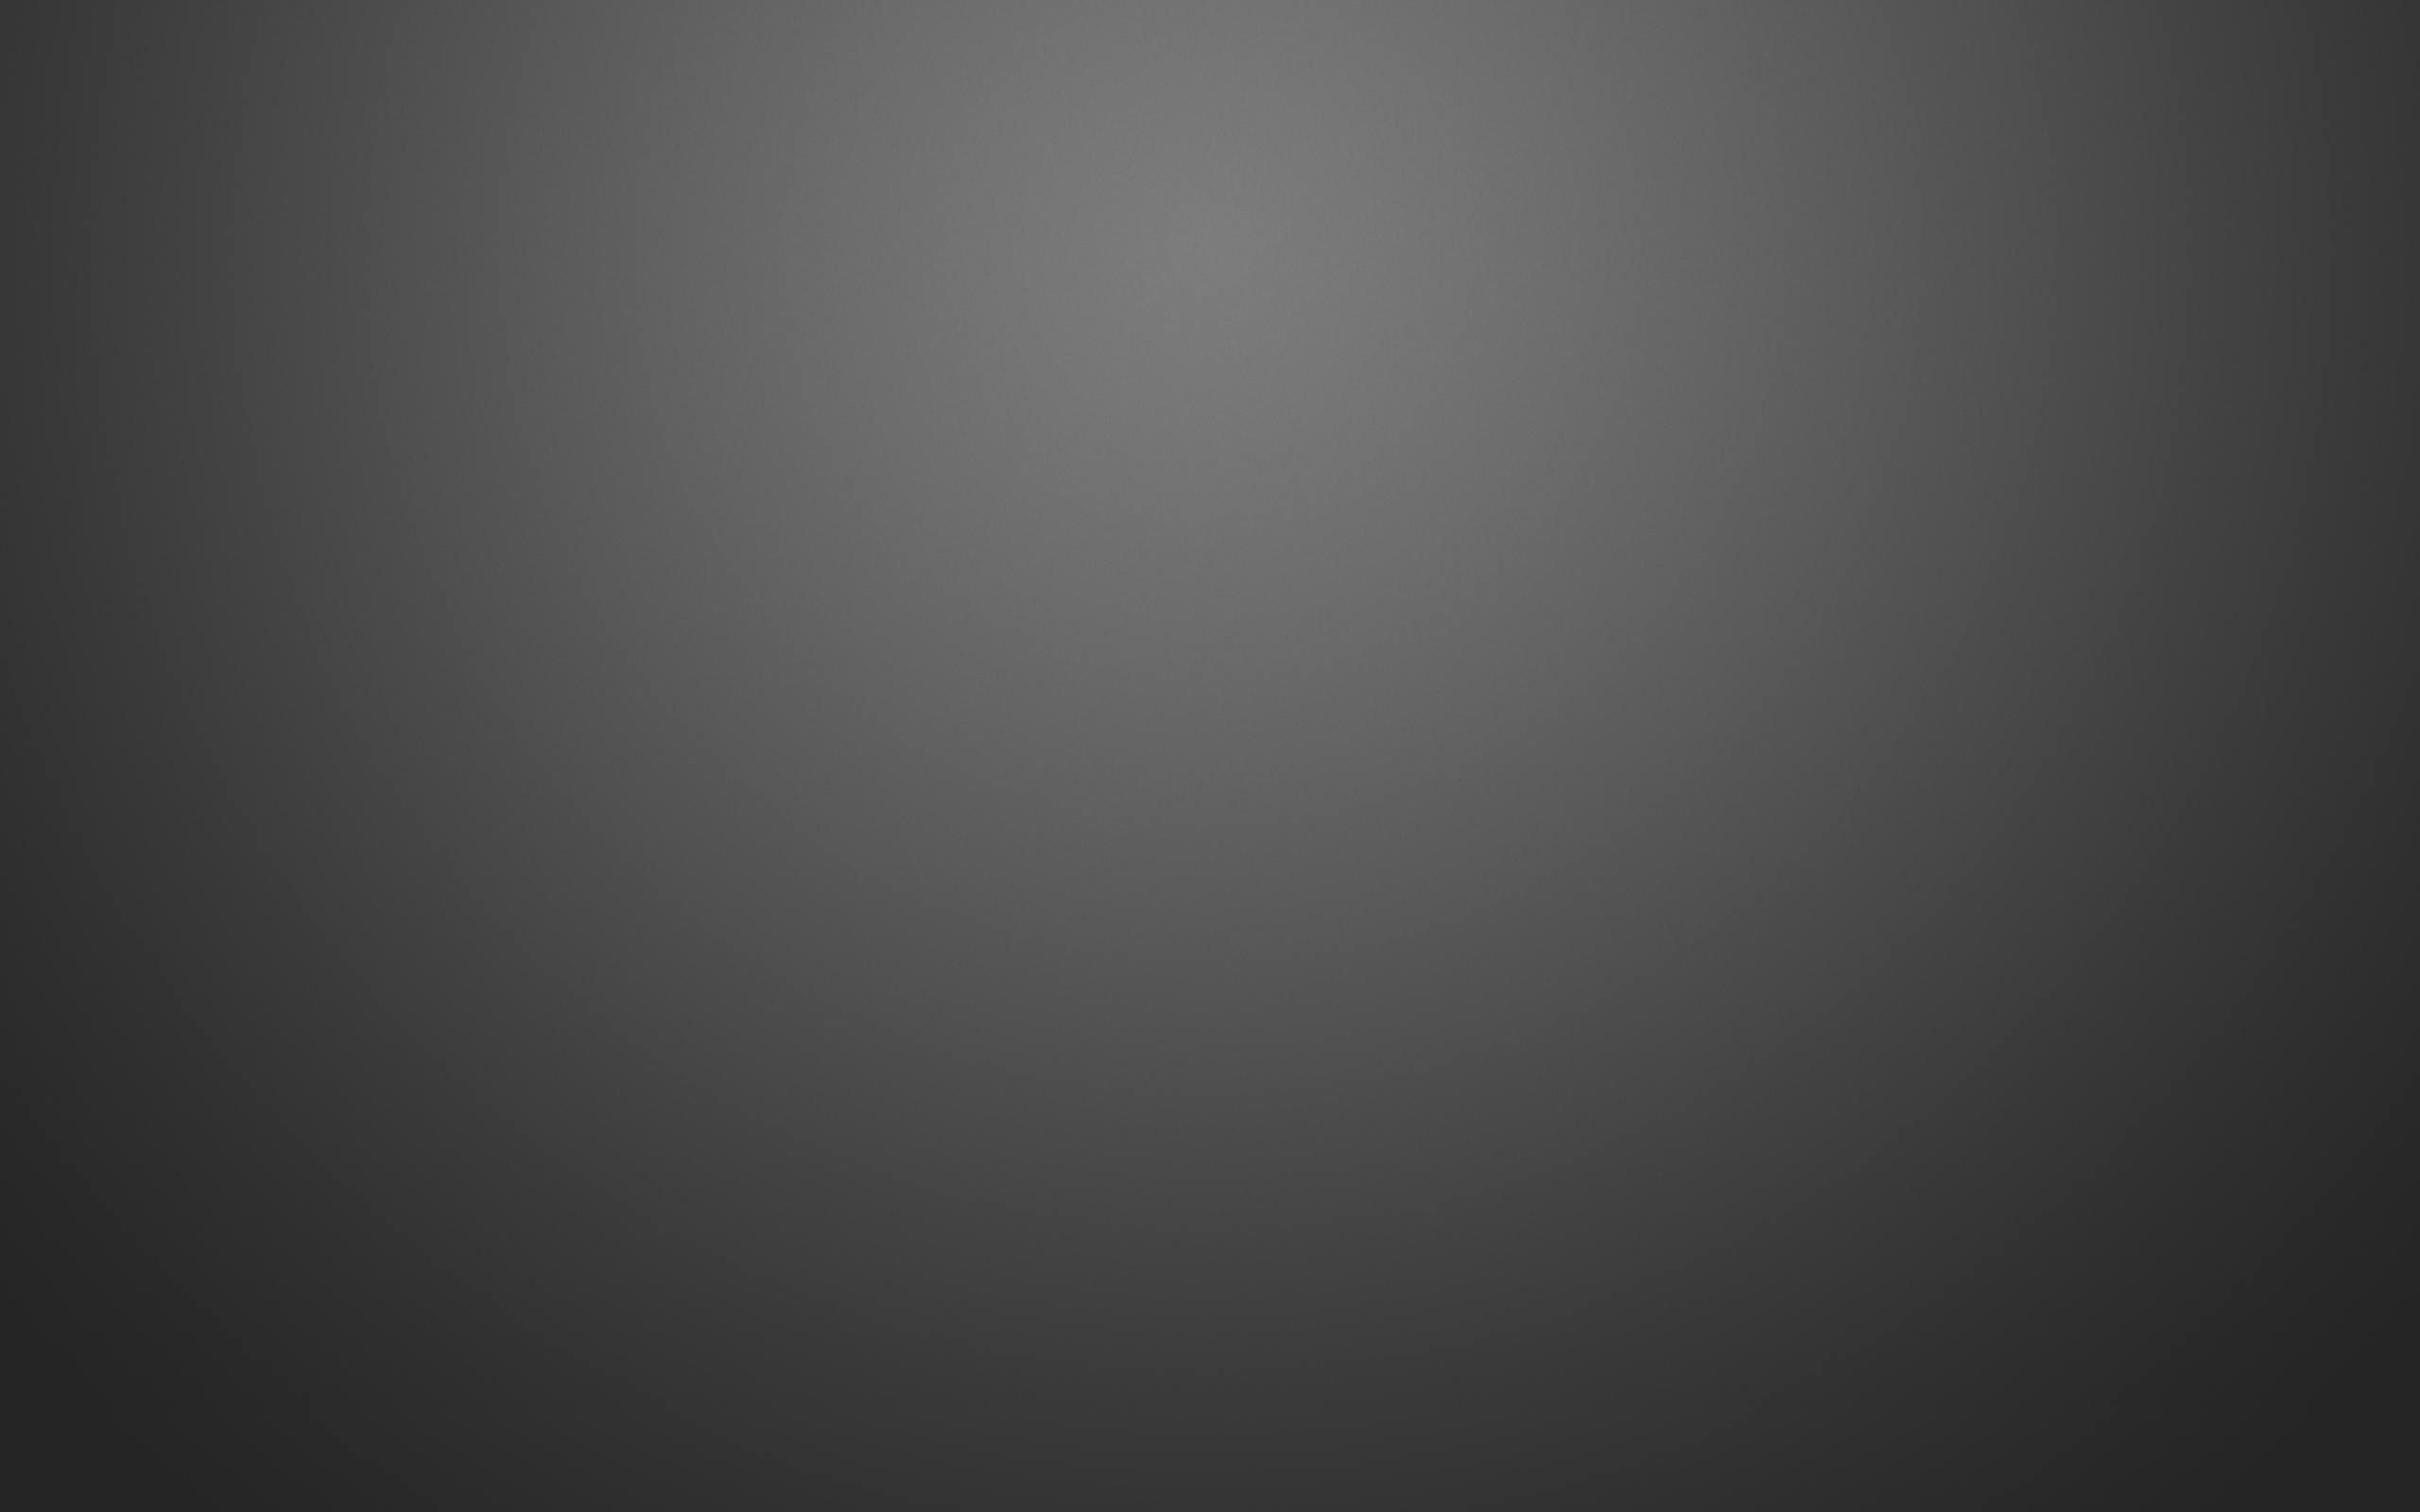 Hd Plain Wallpapers Original Size Blur Picture Plains Background Plain Wallpaper